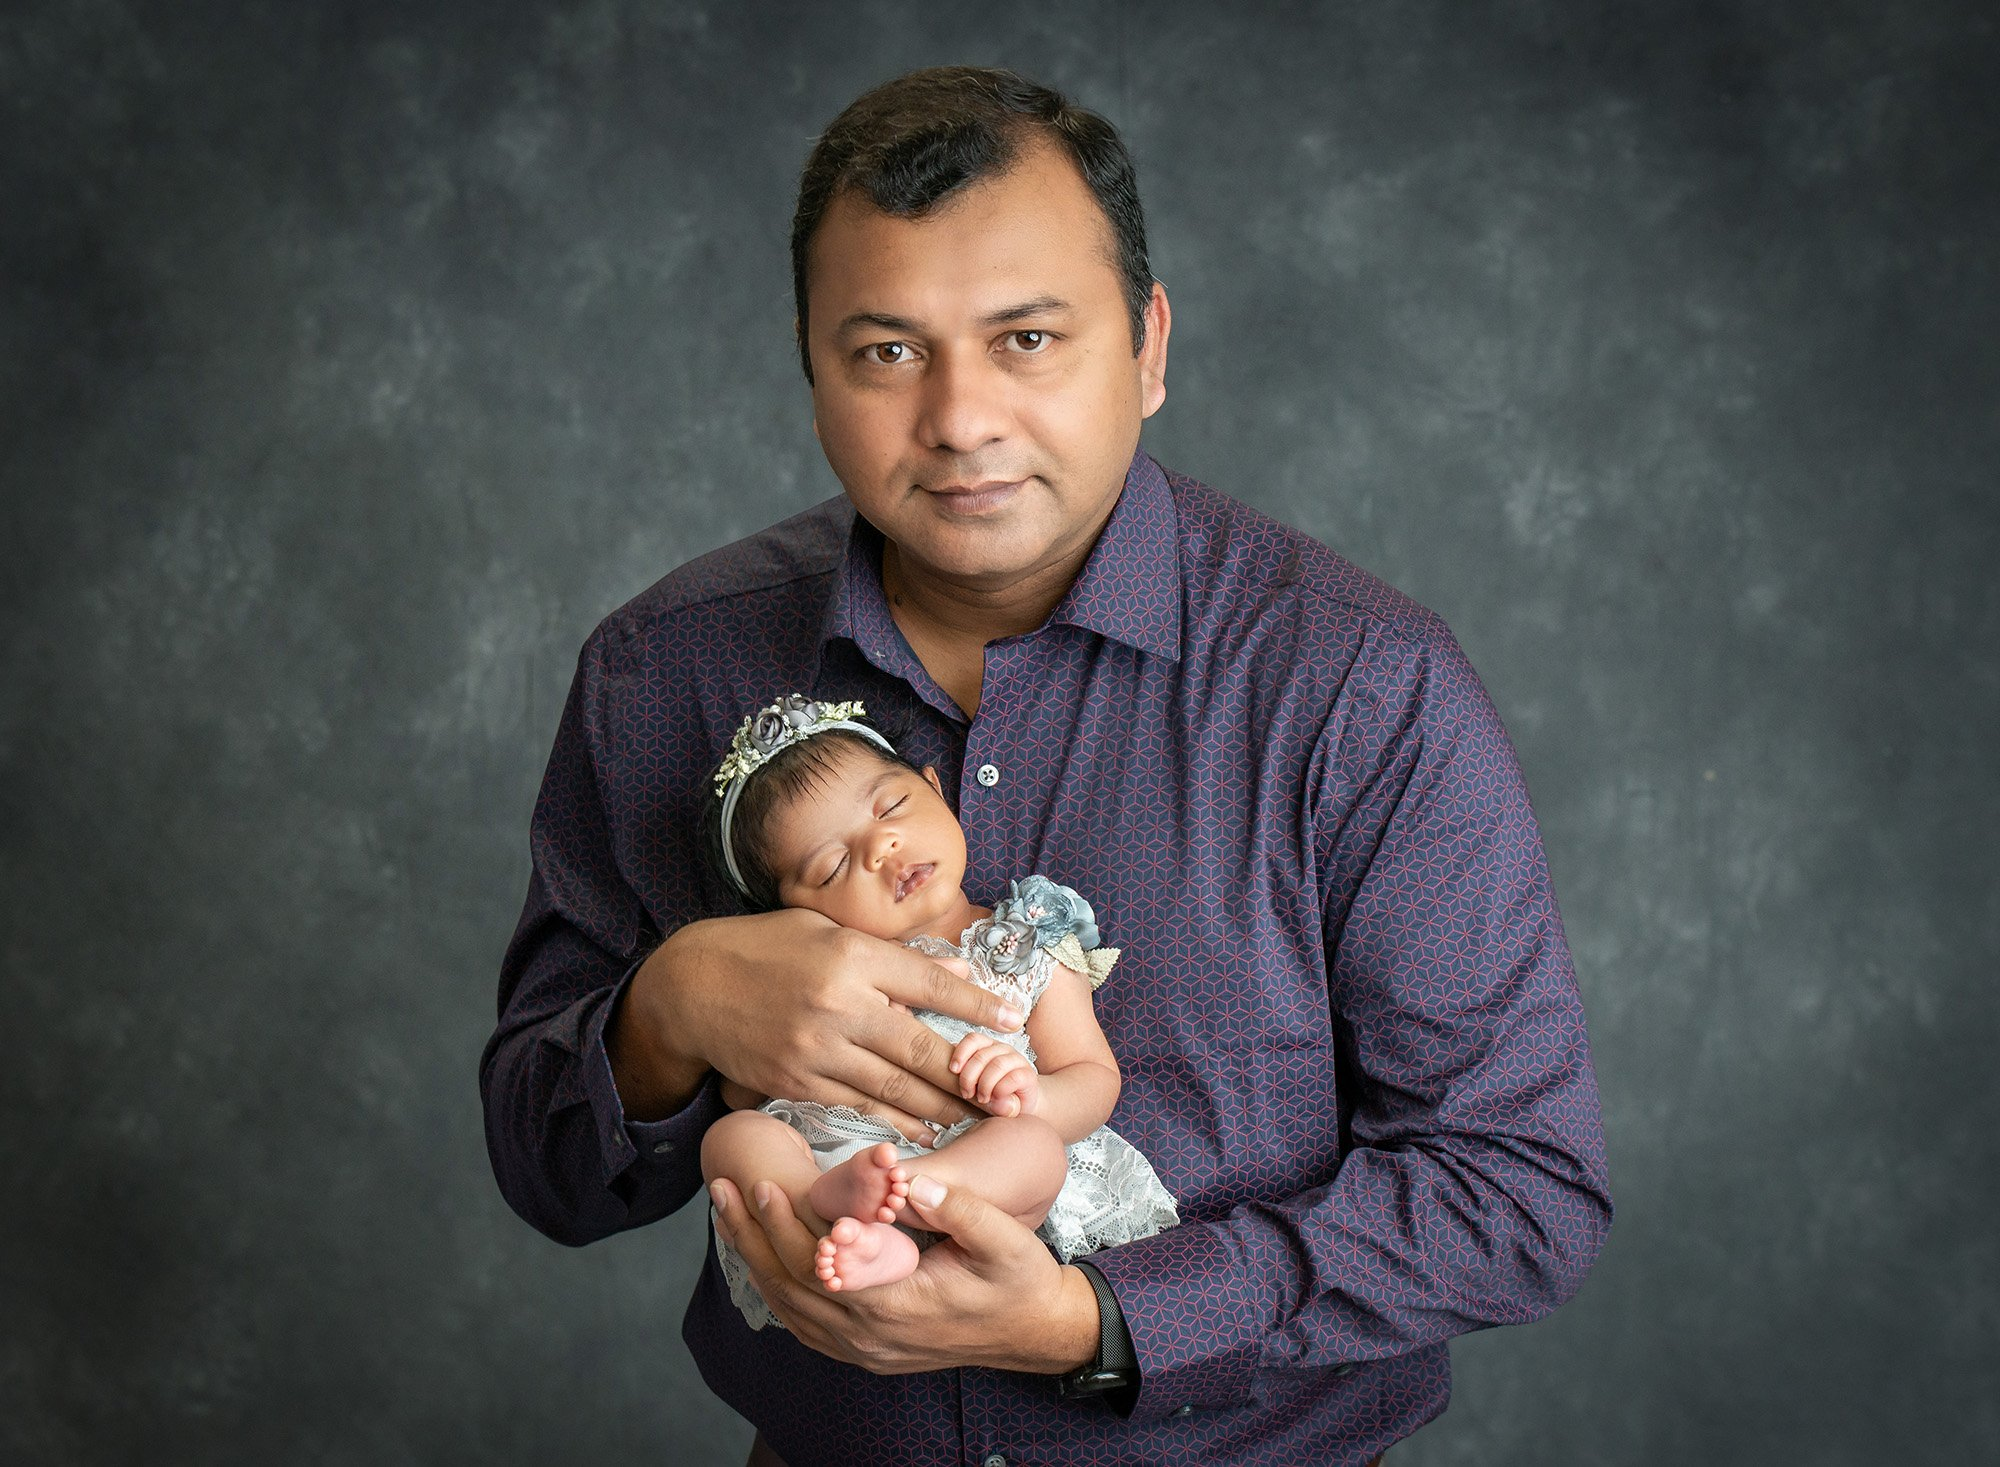 new dad holding sweet newborn baby girl dressed in a floral grey dress and headband on grey background